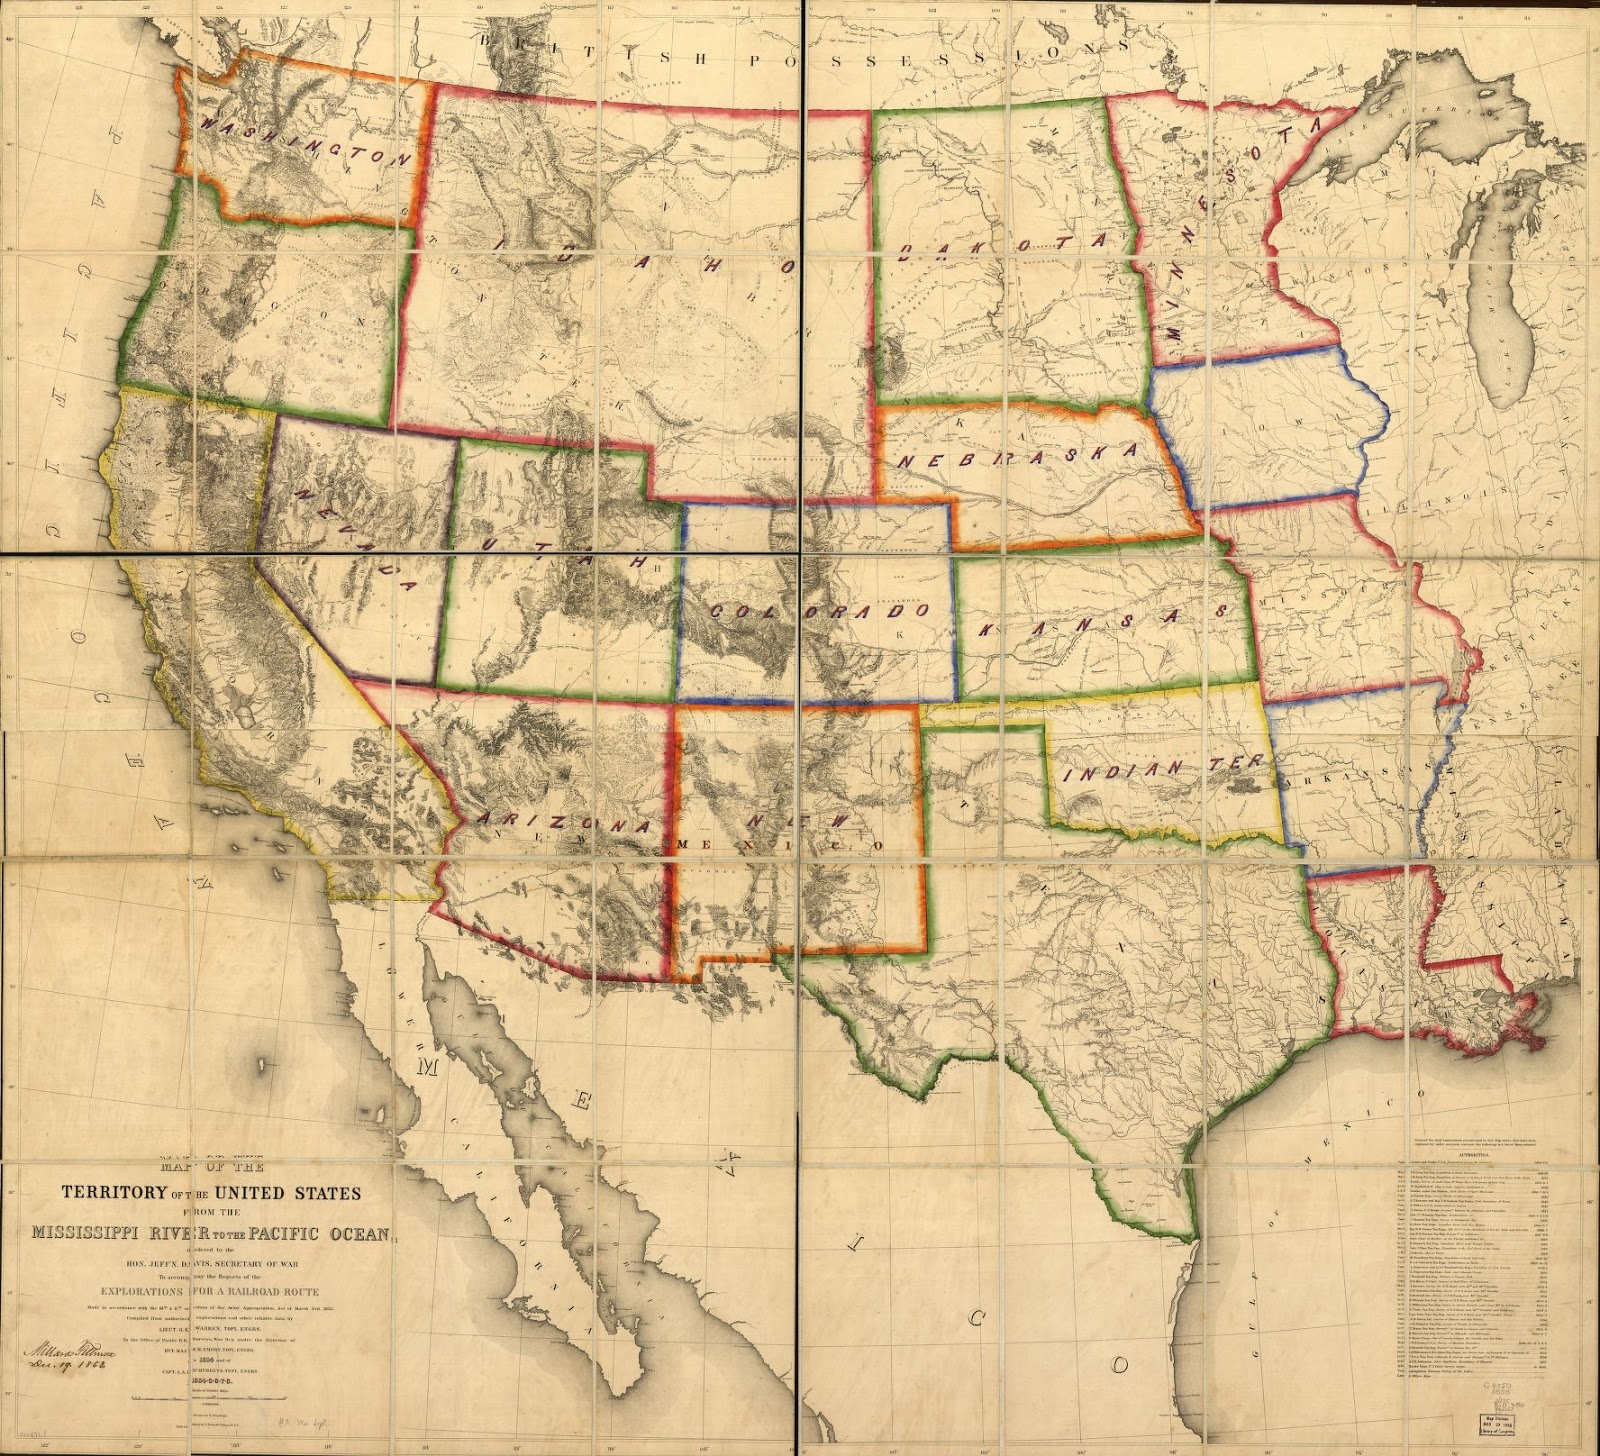 Antique Prints Blog: American State Exclaves: The Dakota Thump on 56th parallel map, fort hulbert map, mannerheim line map, 20th parallel map, 43.50 parallel map,